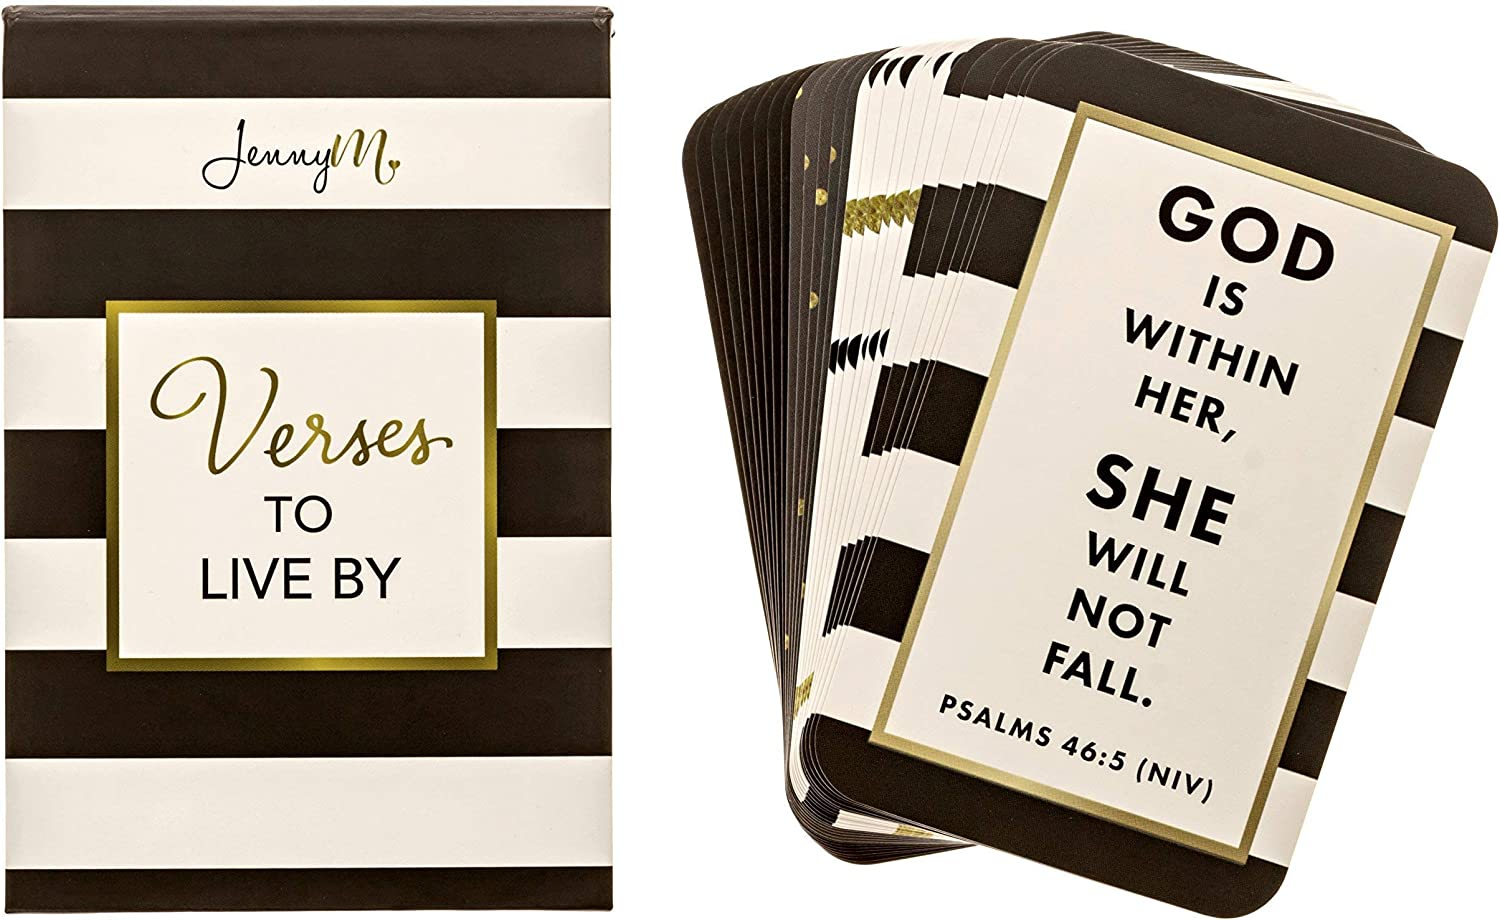 Jennym | Verses To Live By–25Bible Verses Inspirational Prayer Cards, Memory Verse Of The Day Scripture Cards Con Scatola Da Regalo, Scatola Inspirational Blessing Cards, Christian Gift